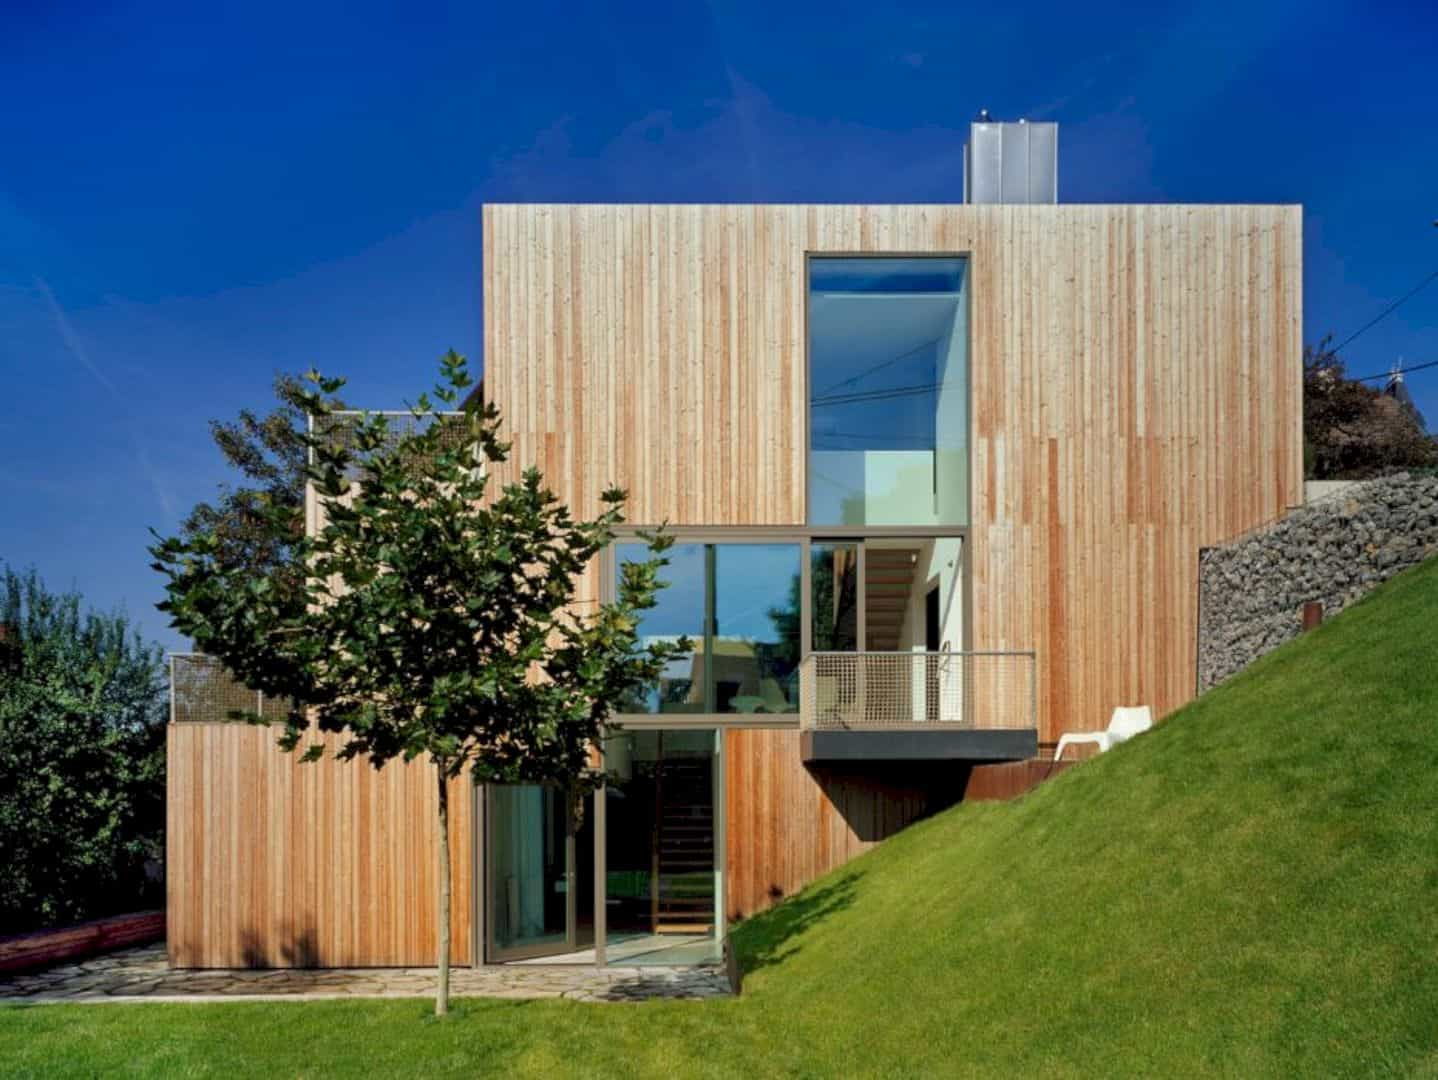 Haus am Hang: A Traditional, New Family Home that Tucked into the ...